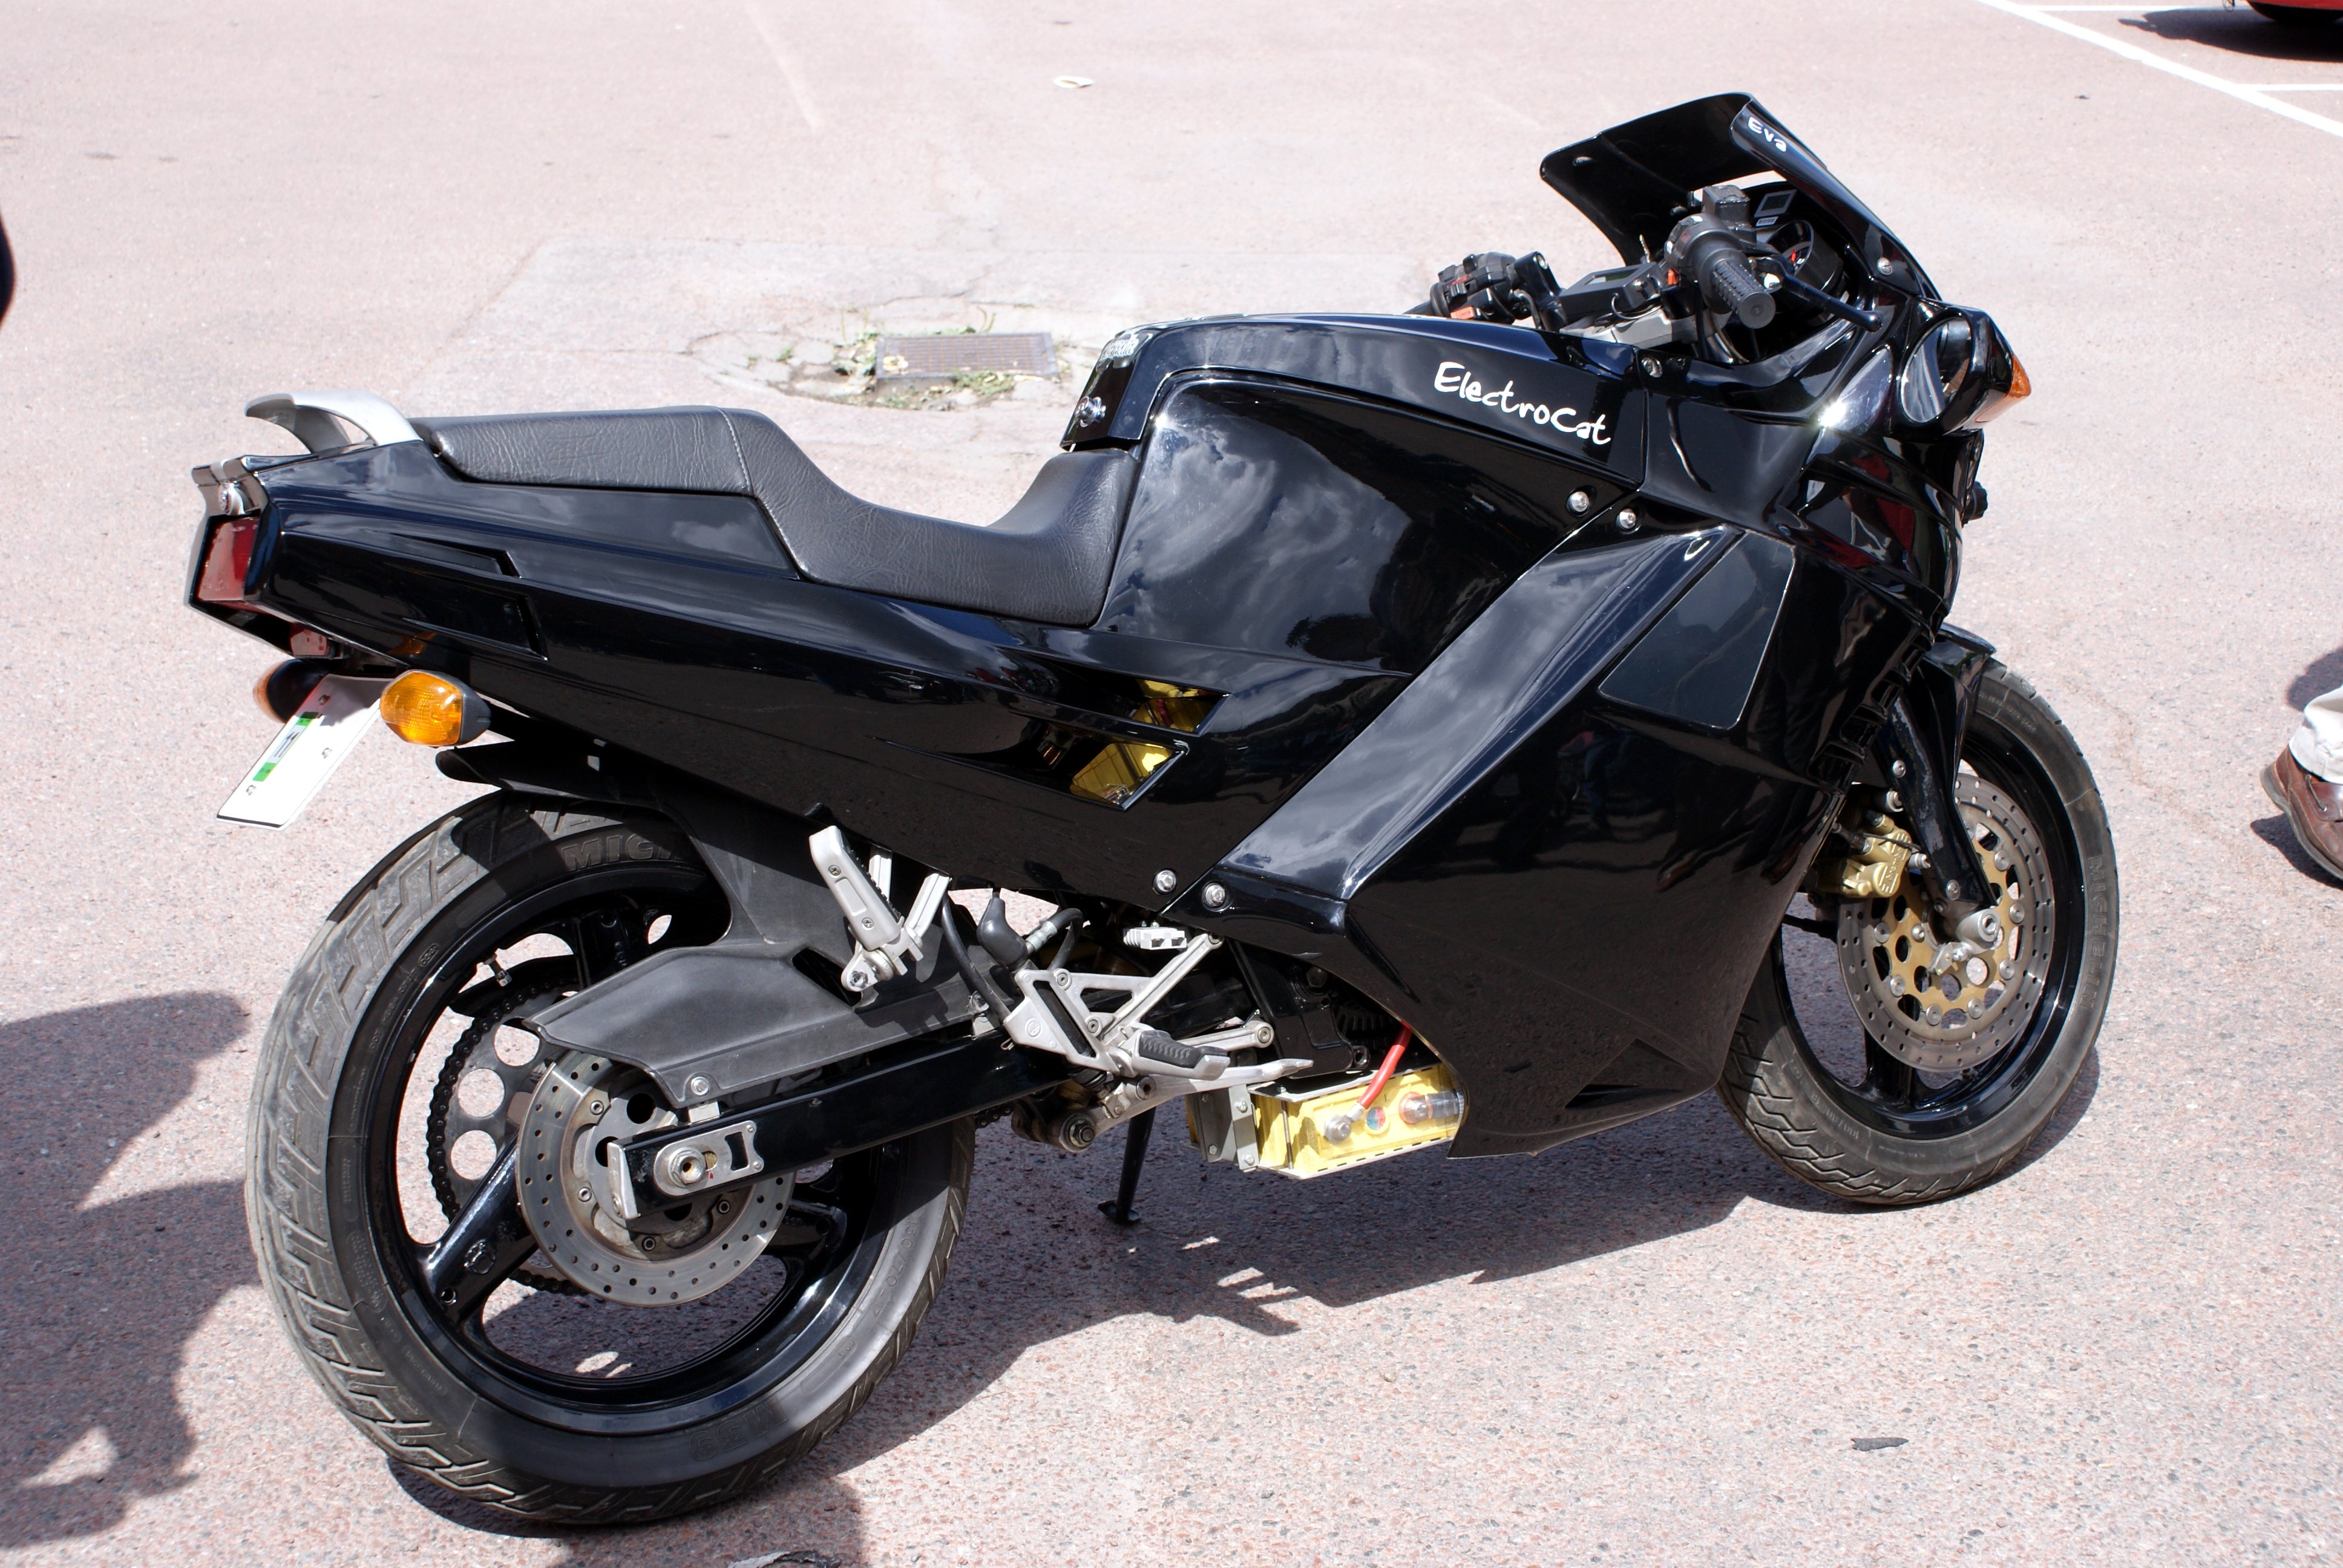 Image result for electric motorcycle